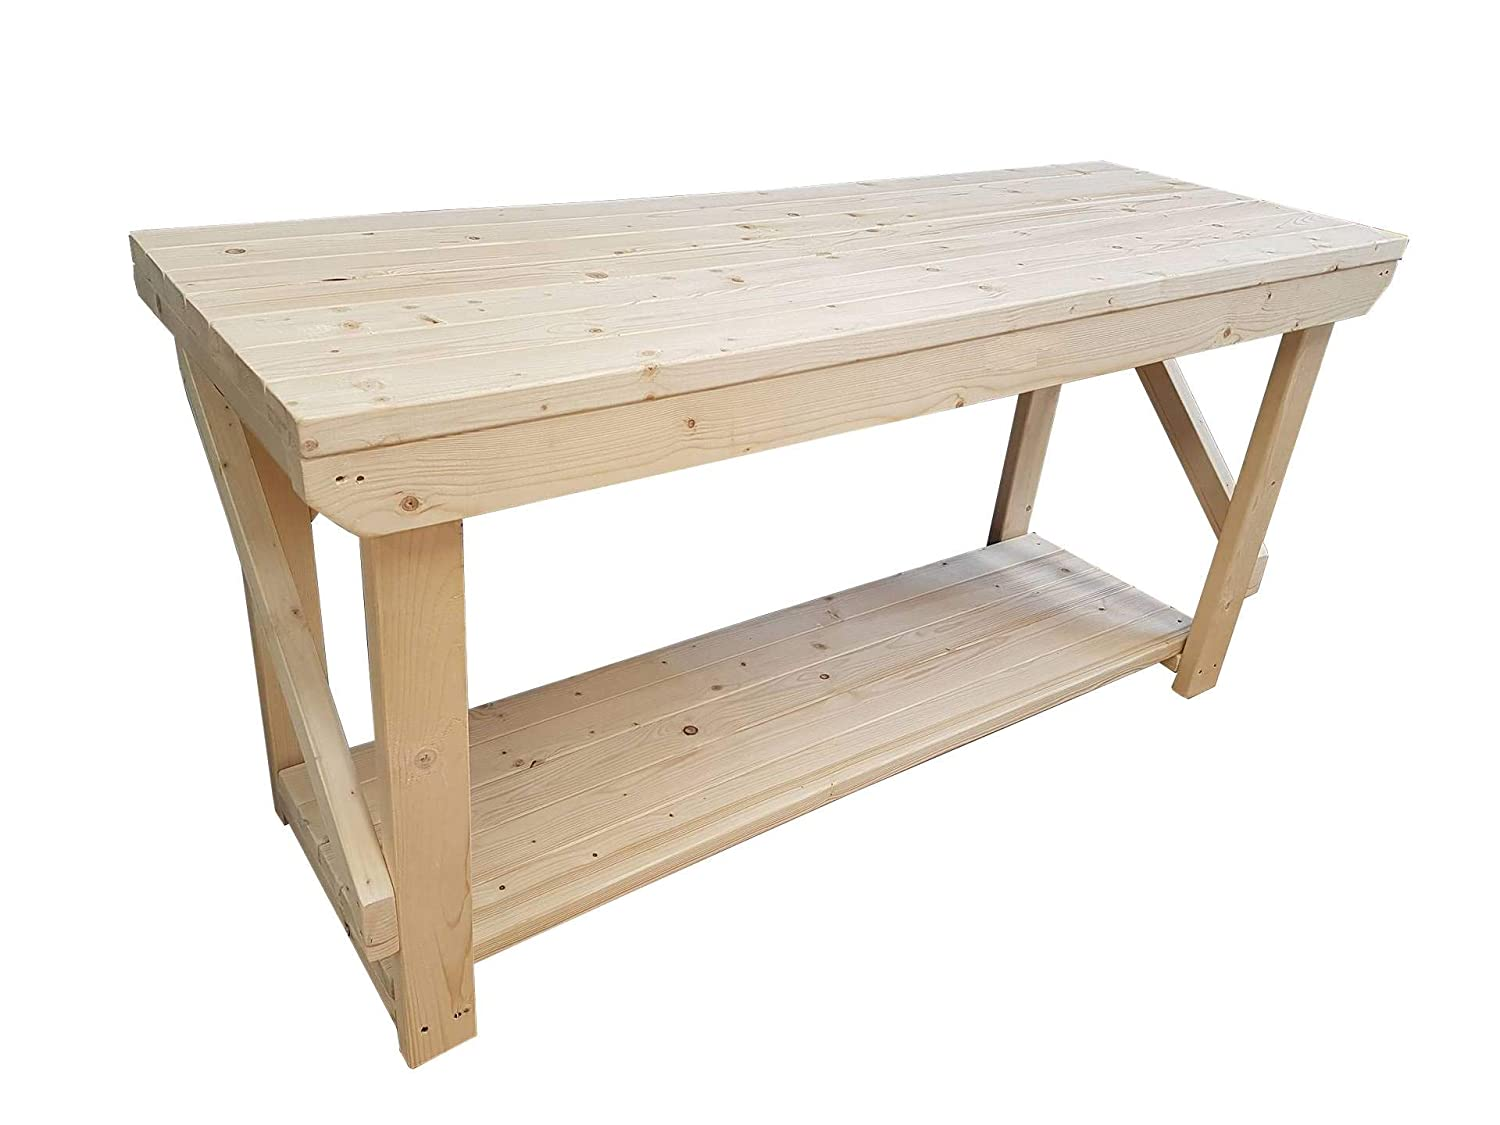 ACORN Wooden Workbench - Handmade Heavy Duty Work Table - Made From Construction Grade Timber (4FT) GMS TIMBER LTD